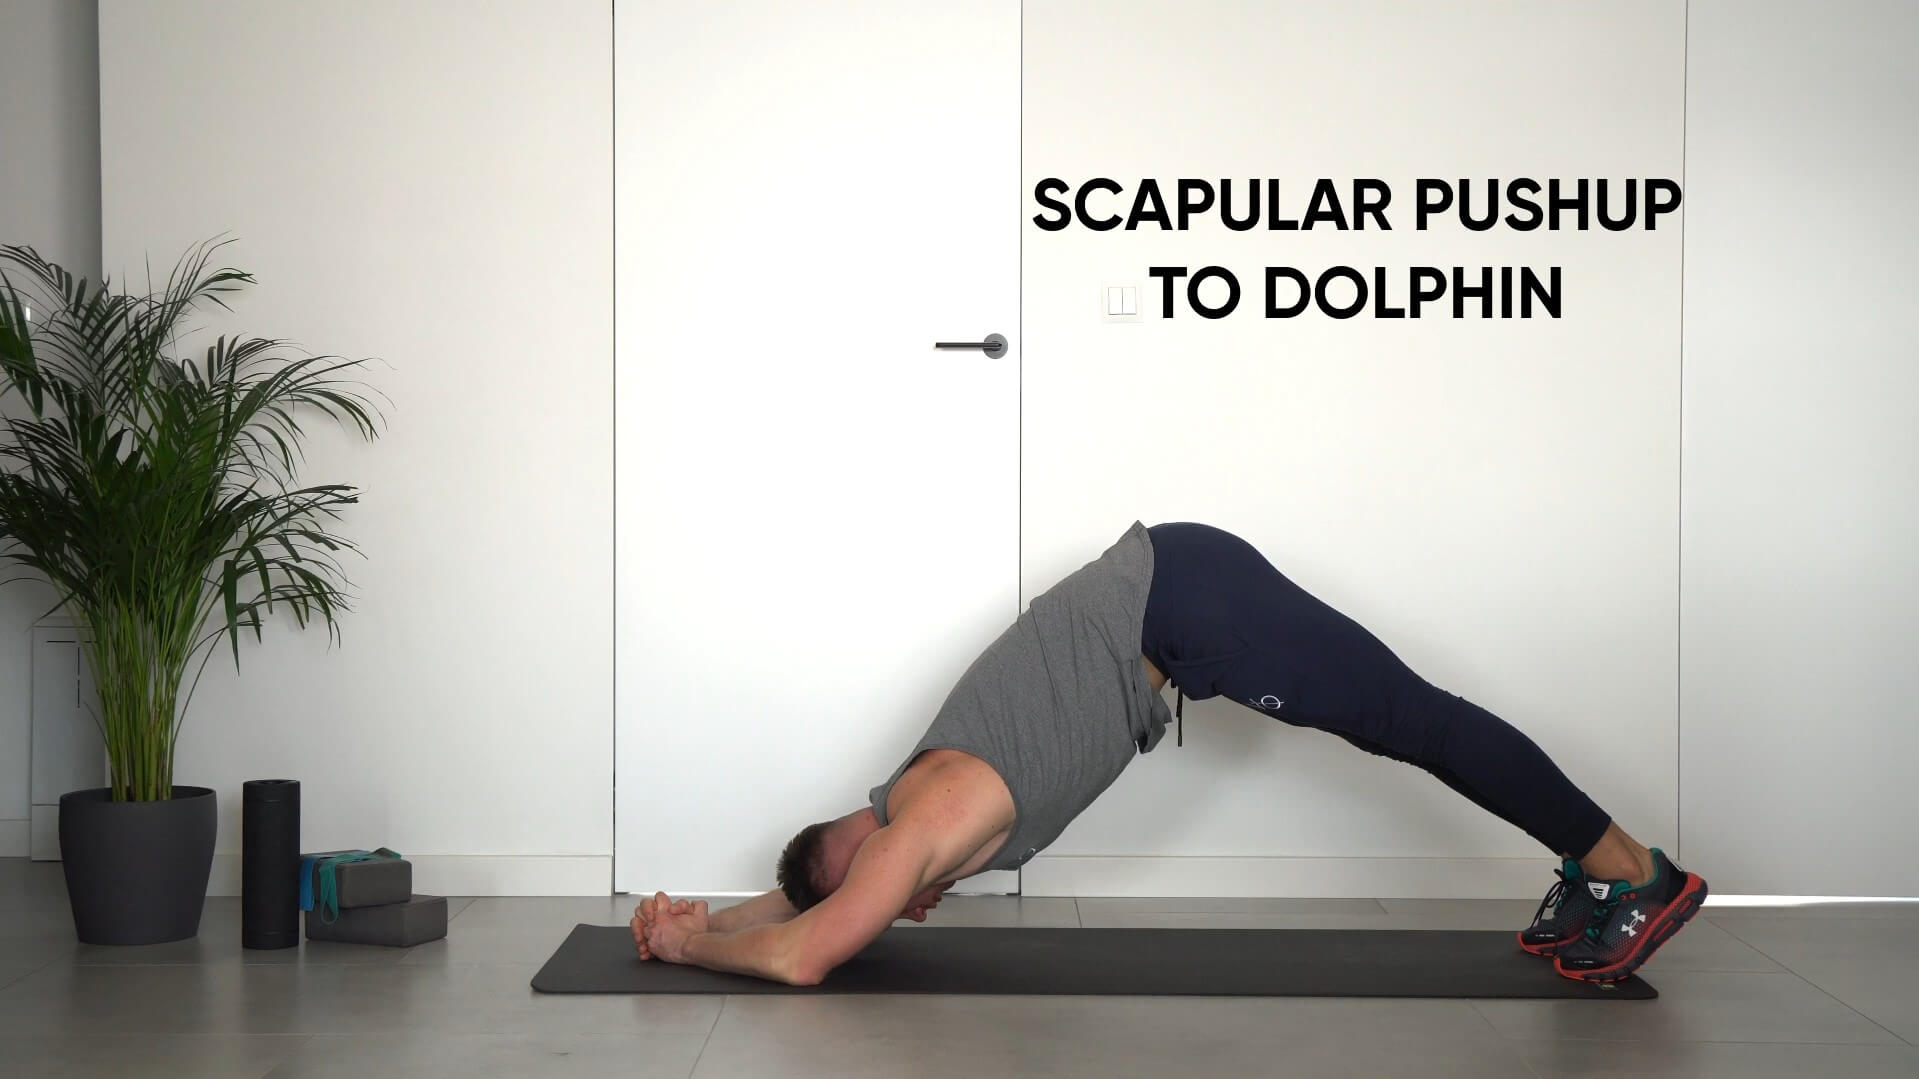 Scapular pushup to dolphin